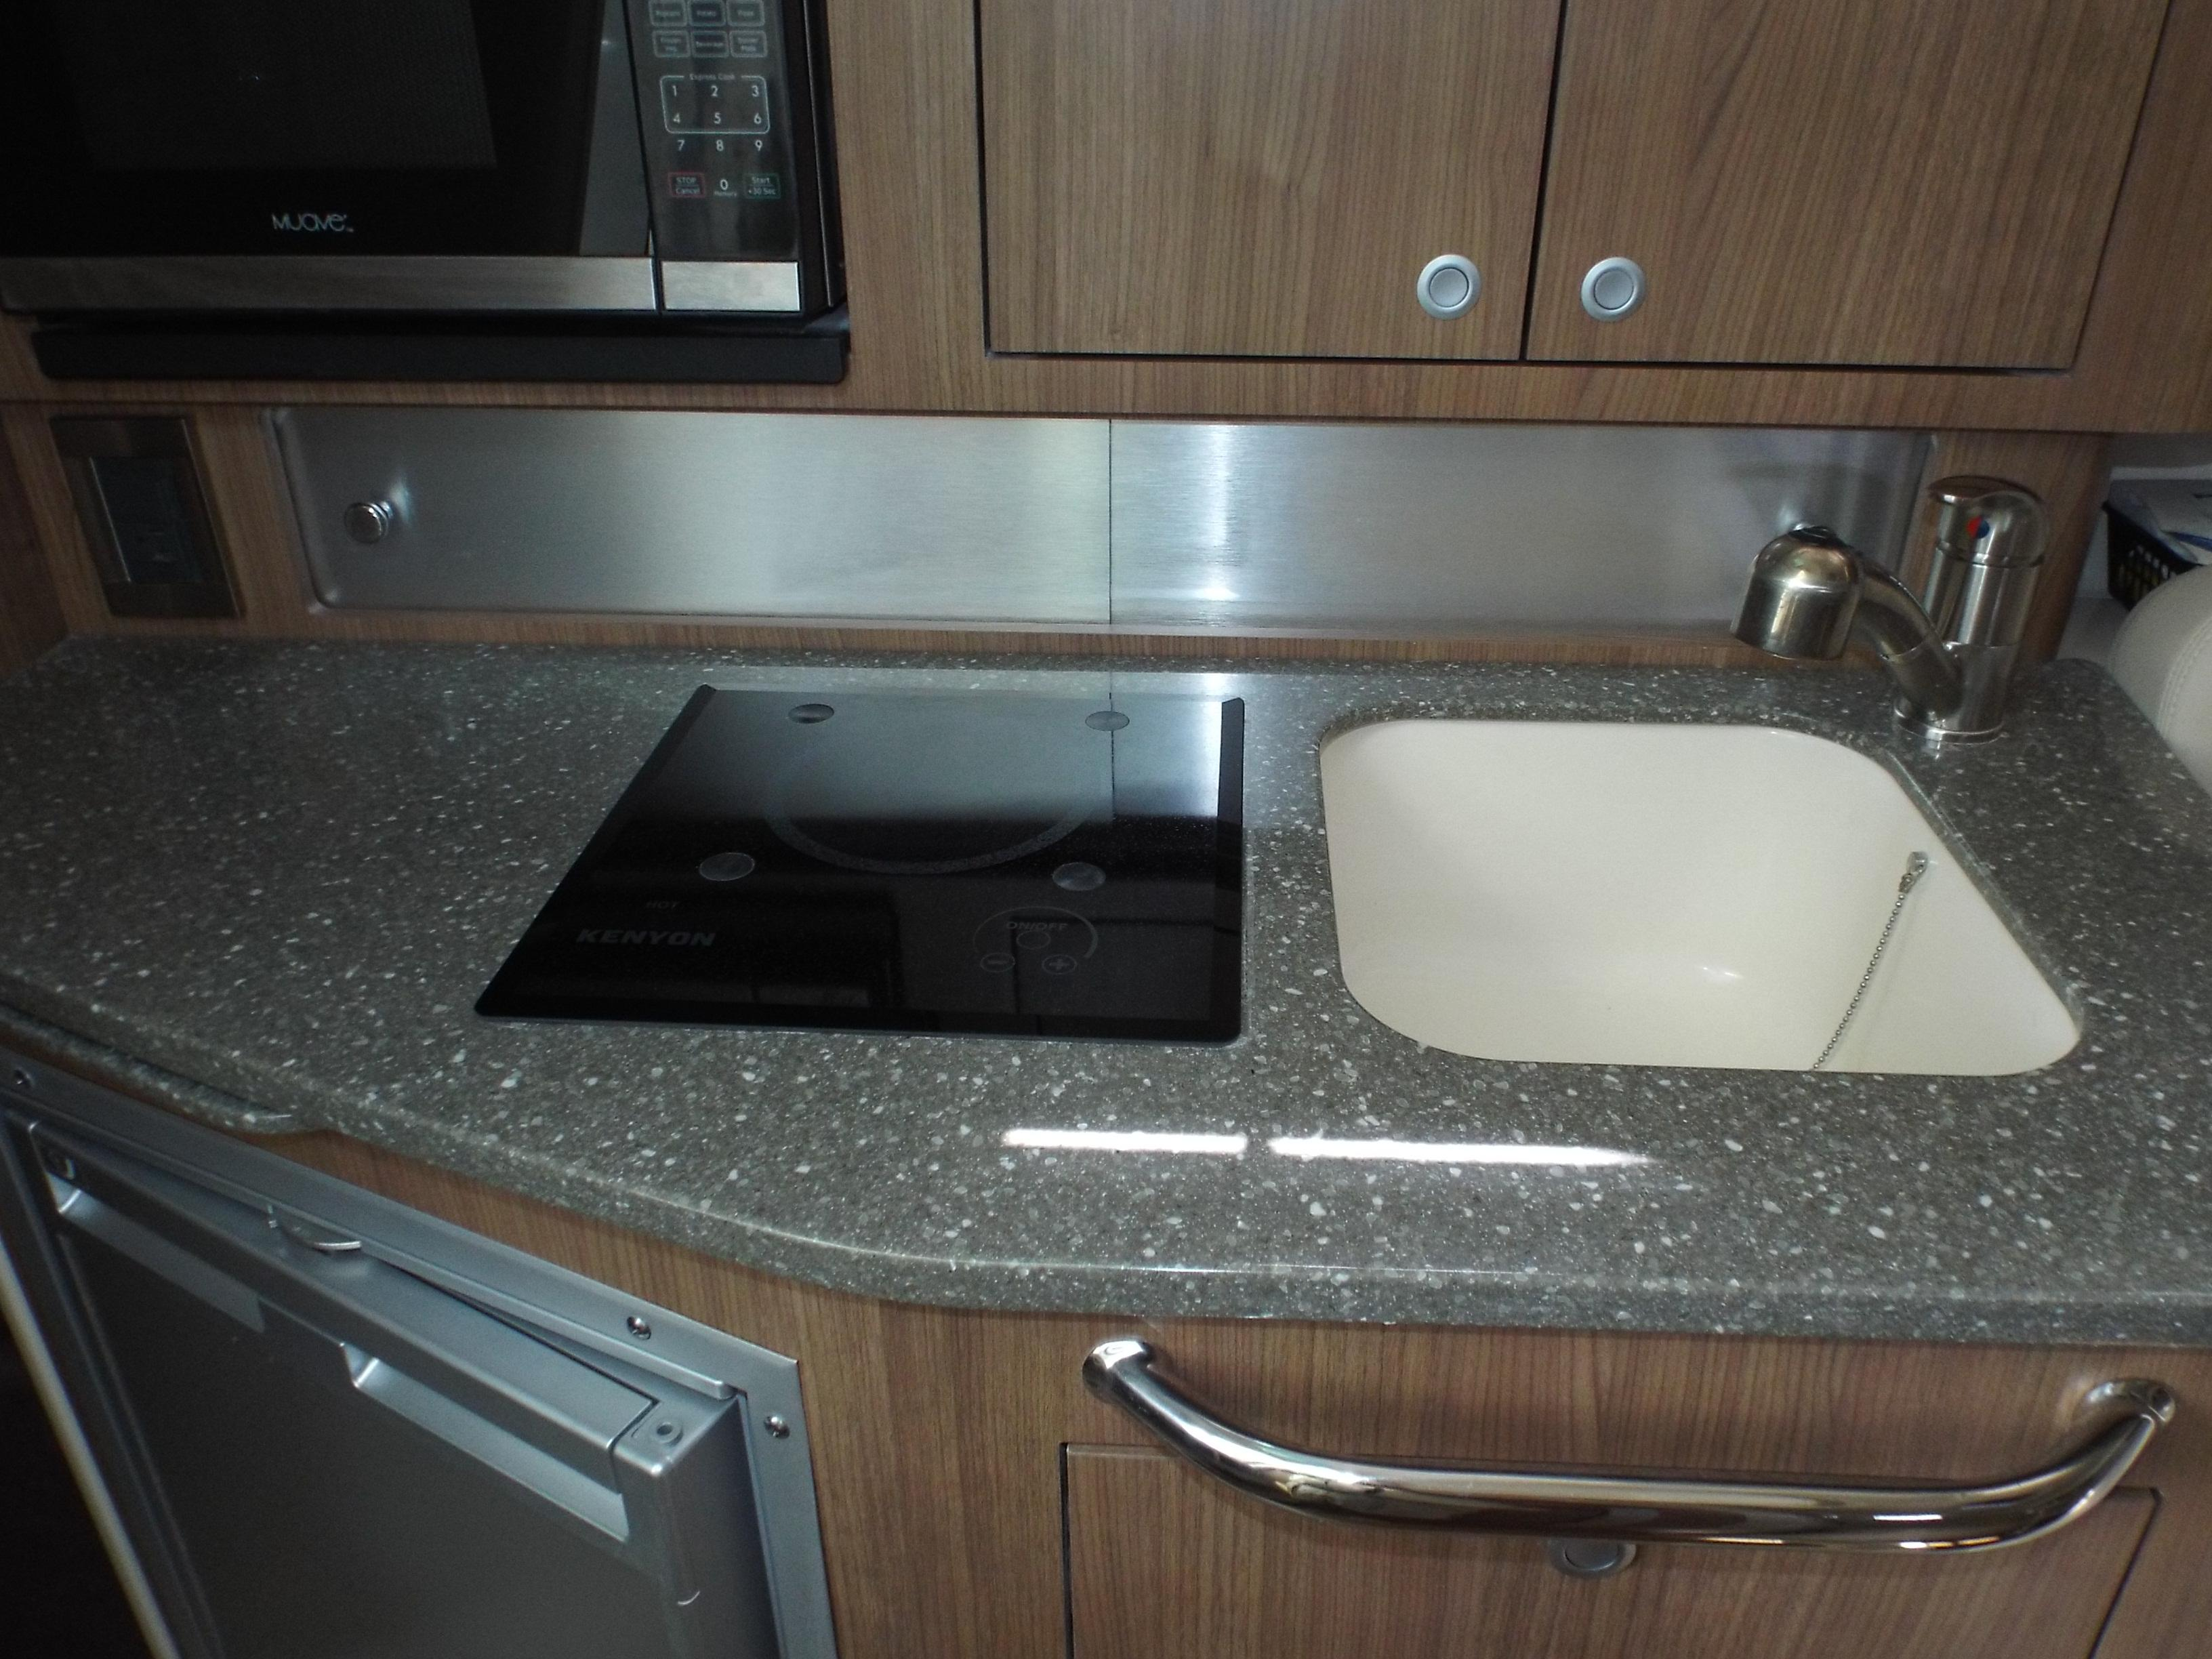 Galley Counter Top/ Sink/ Single Burner Stove Top